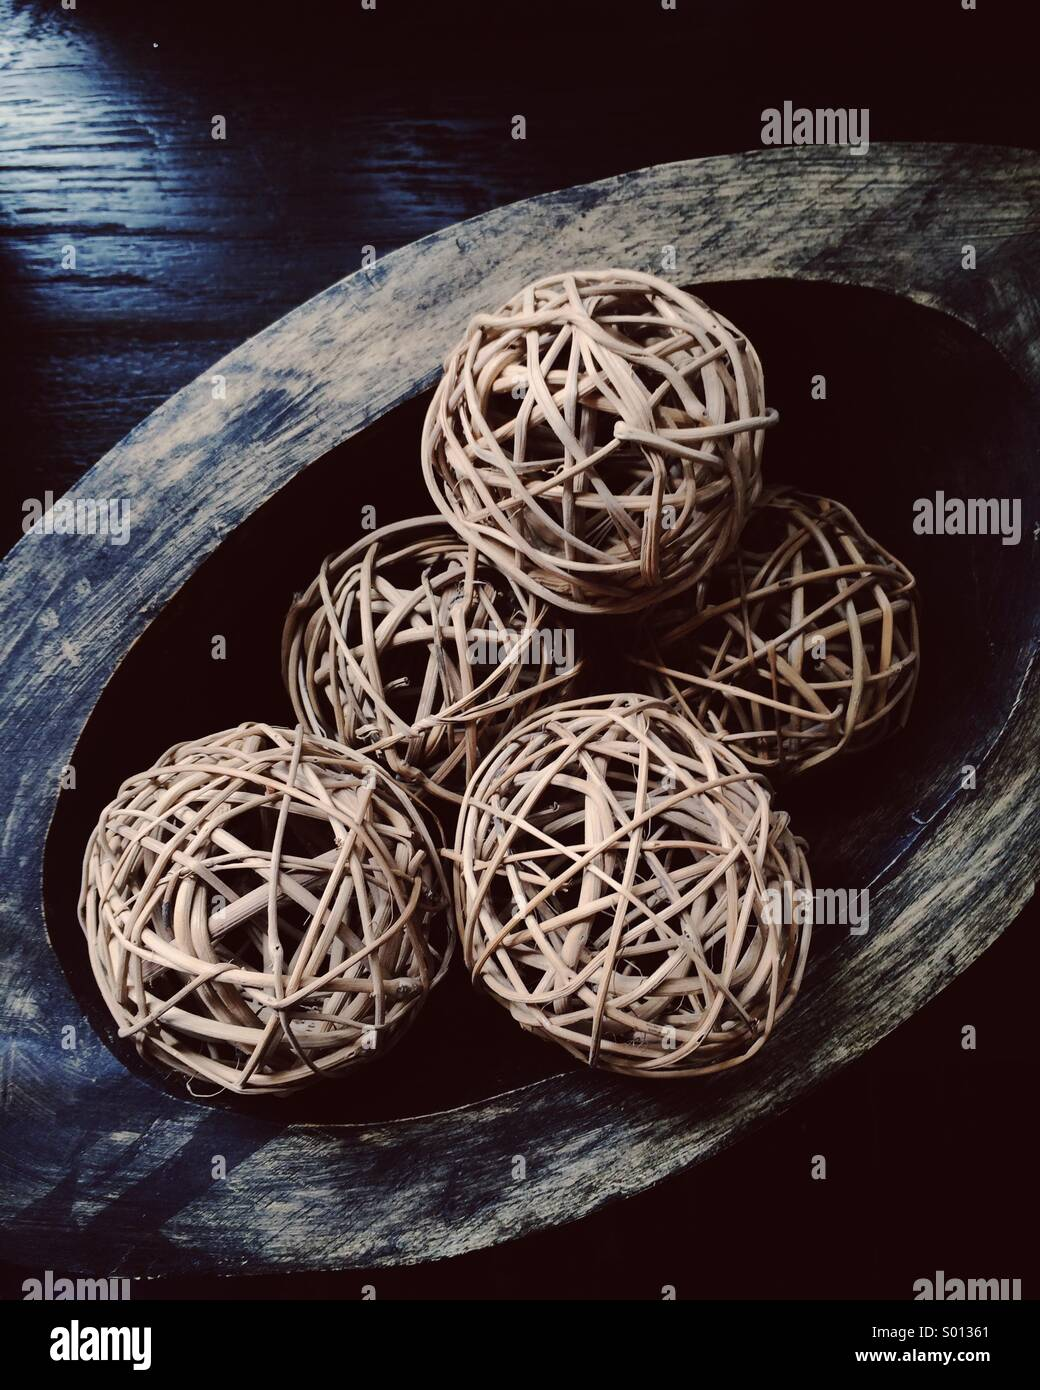 Rustic woven balls in wooden dish - Stock Image